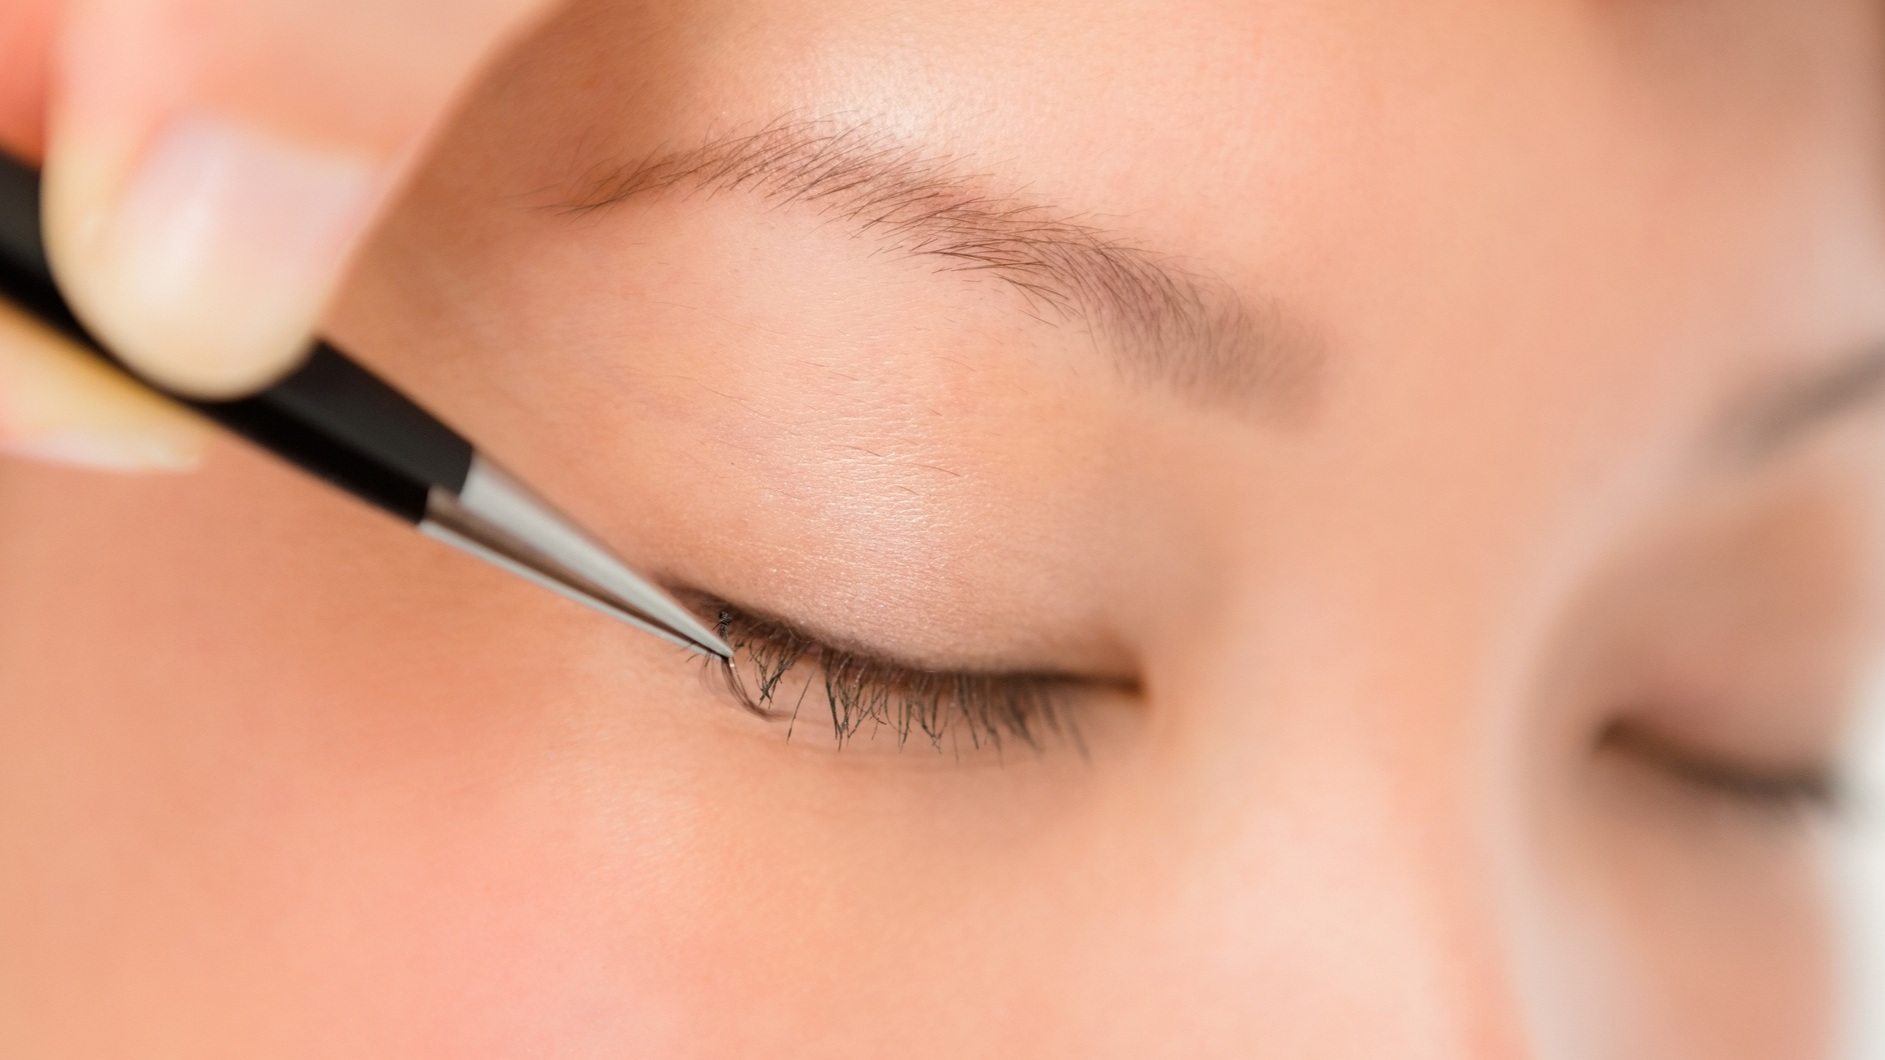 Lashes being added to a client's lash line by a technician using tweezers and adhesive